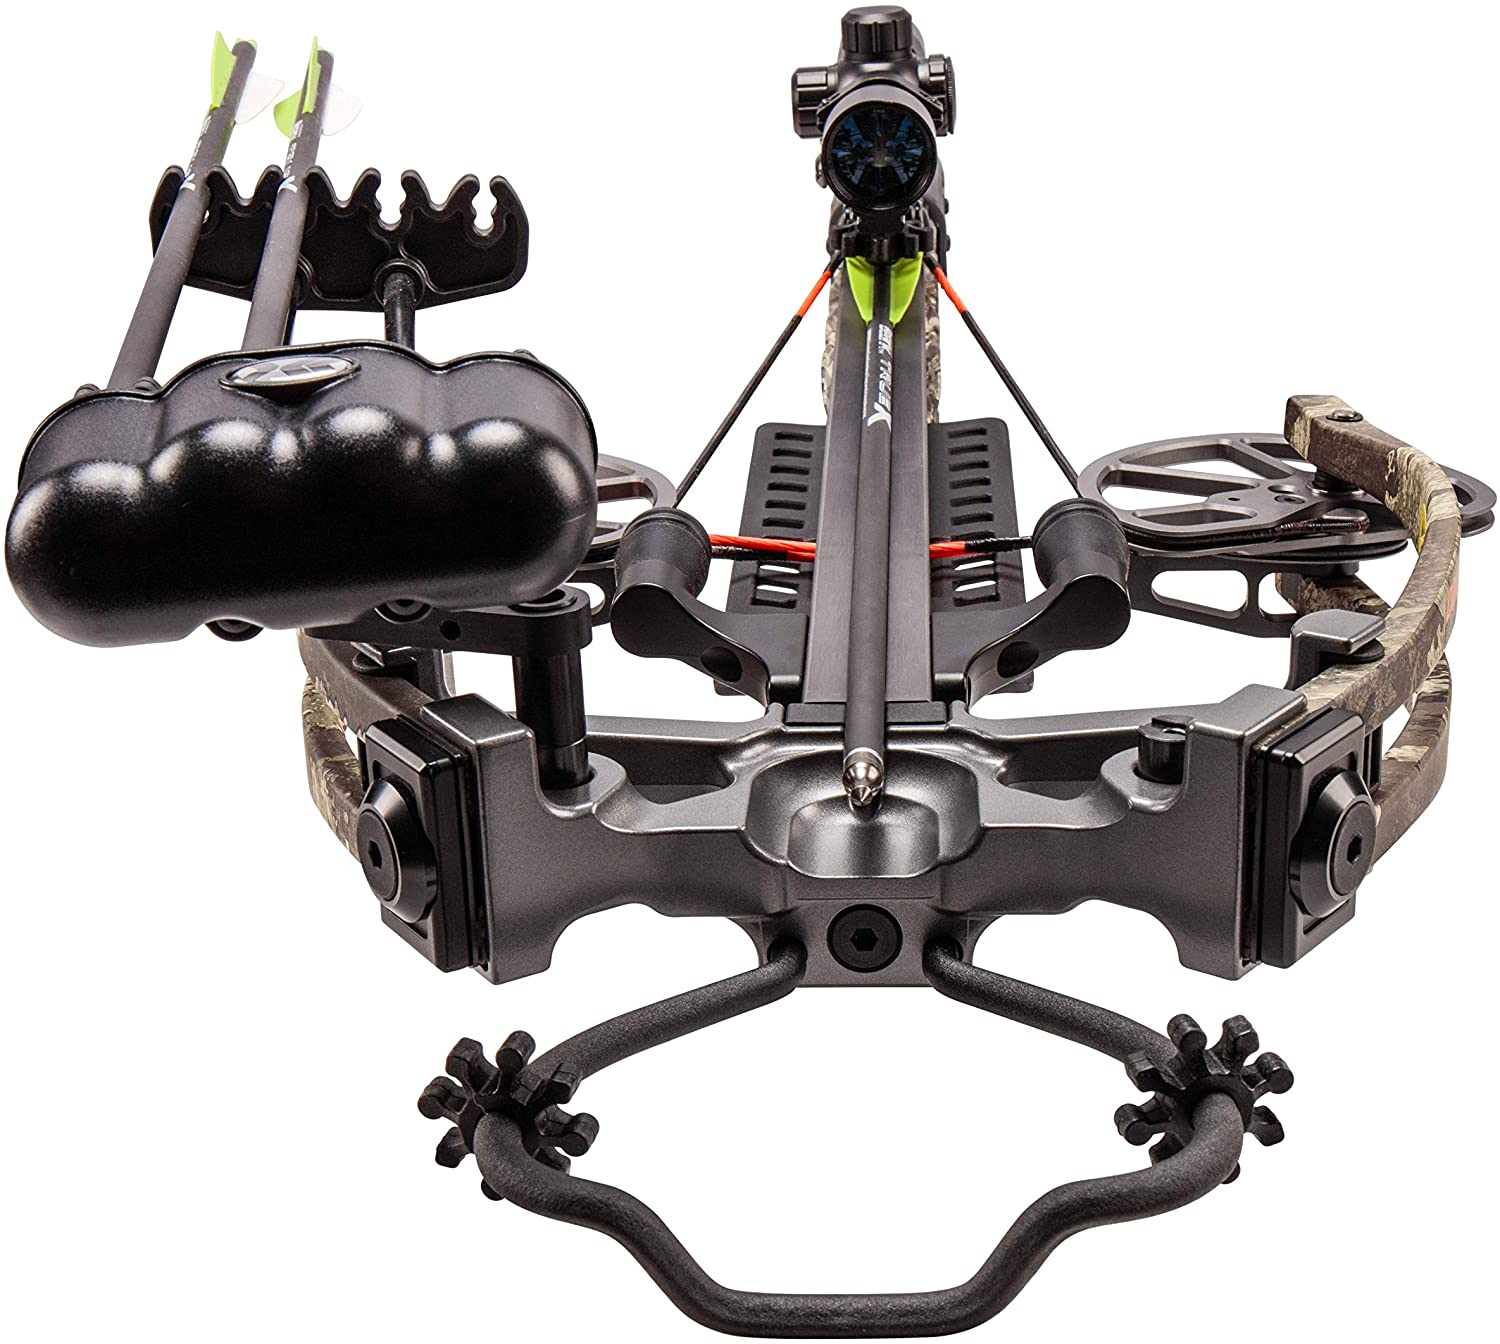 bearx constrictor crossbow package review